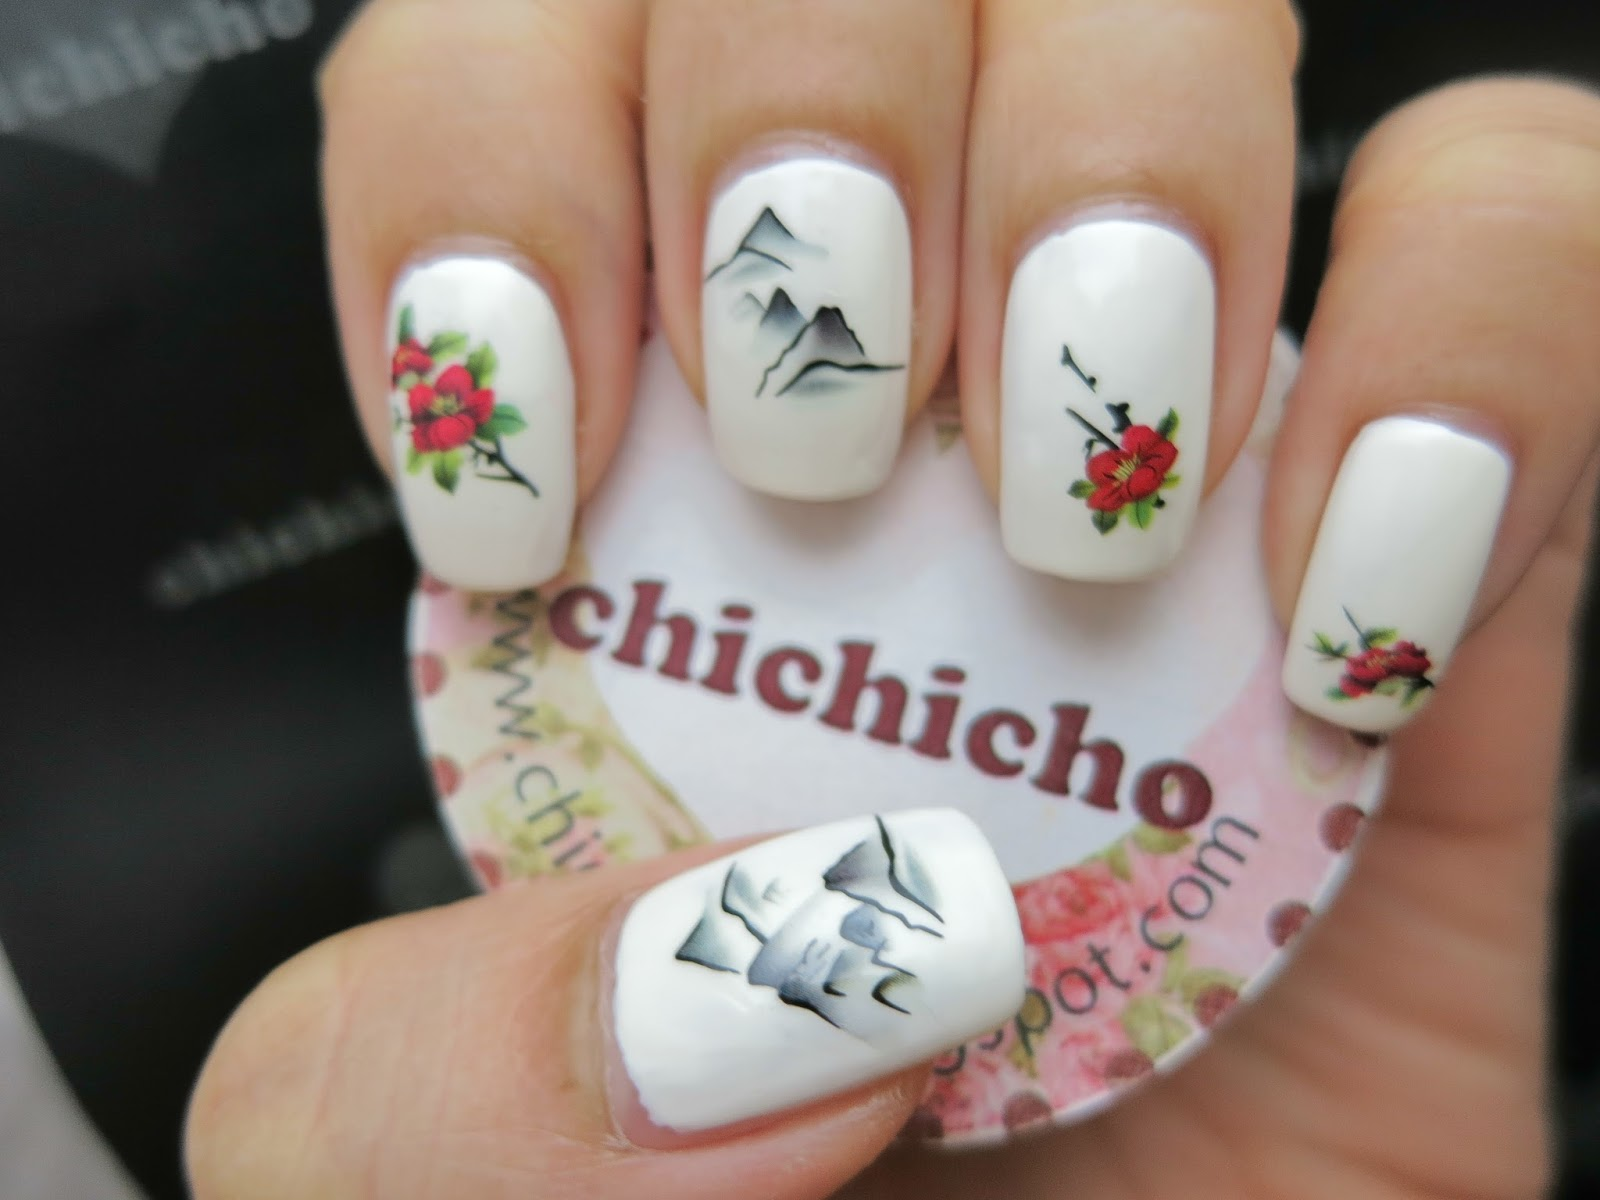 Flowers And Mountains Chinese Painting Water Decal Nail Art Chichicho